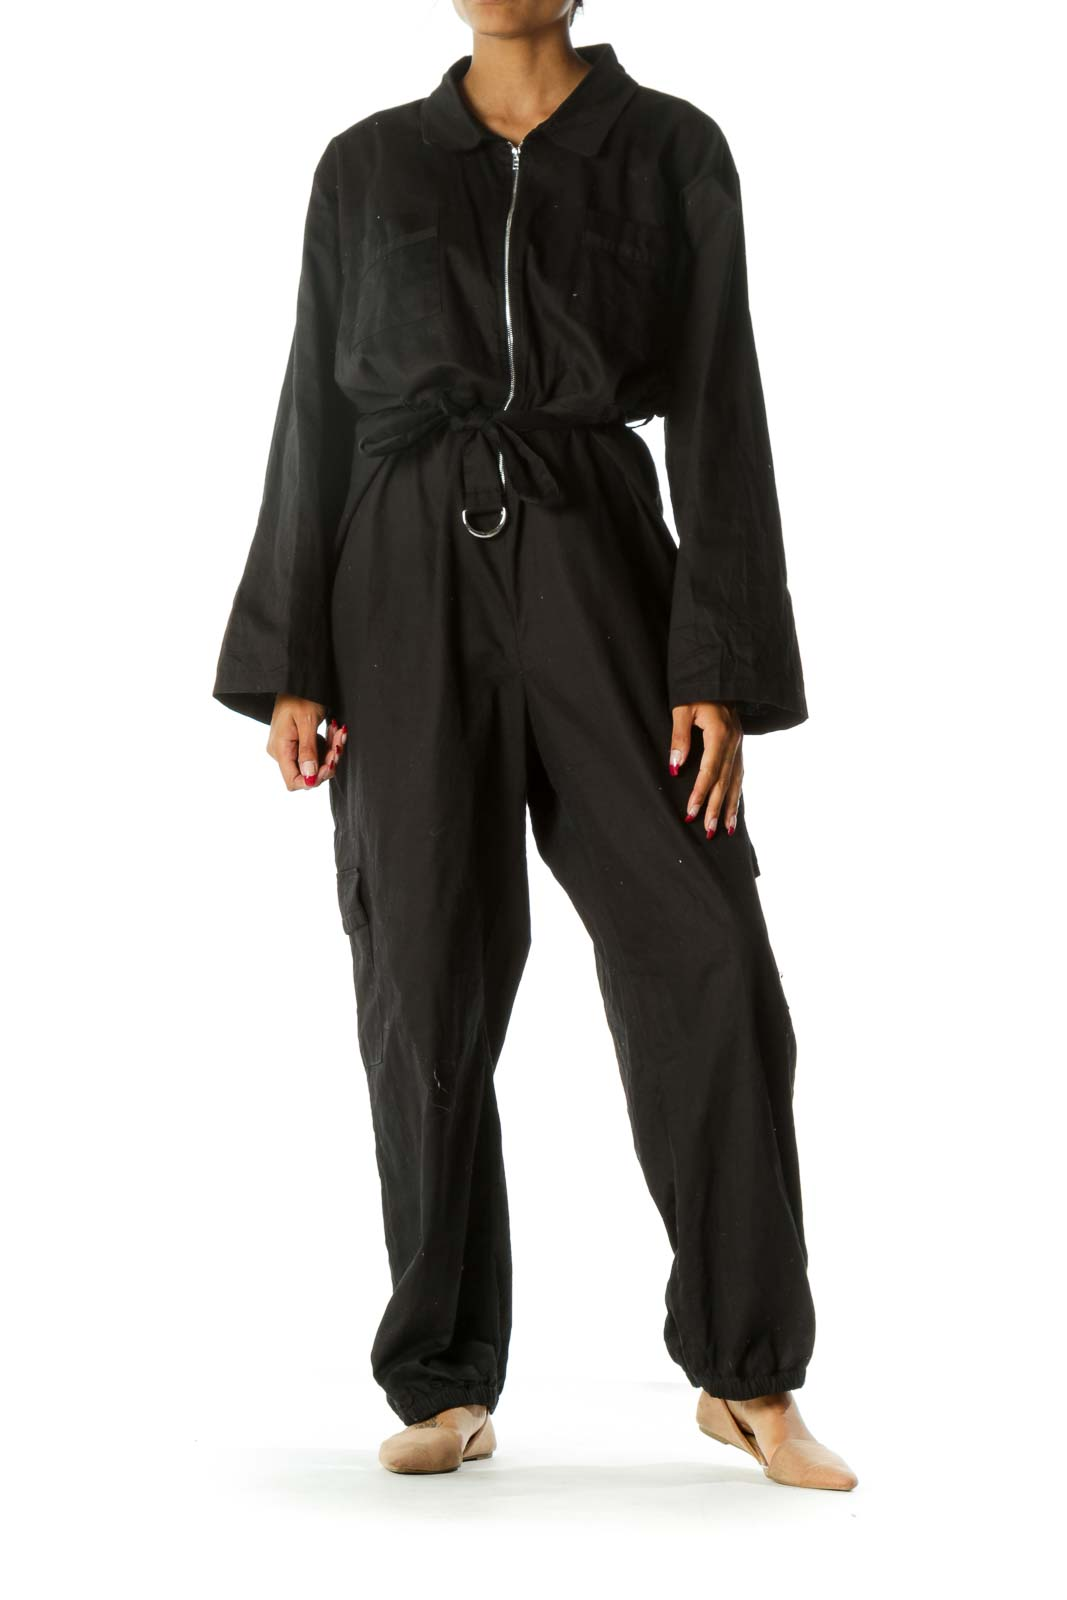 Black Zippered Pocketed Belted Elastic Ankles Jumpsuit Front